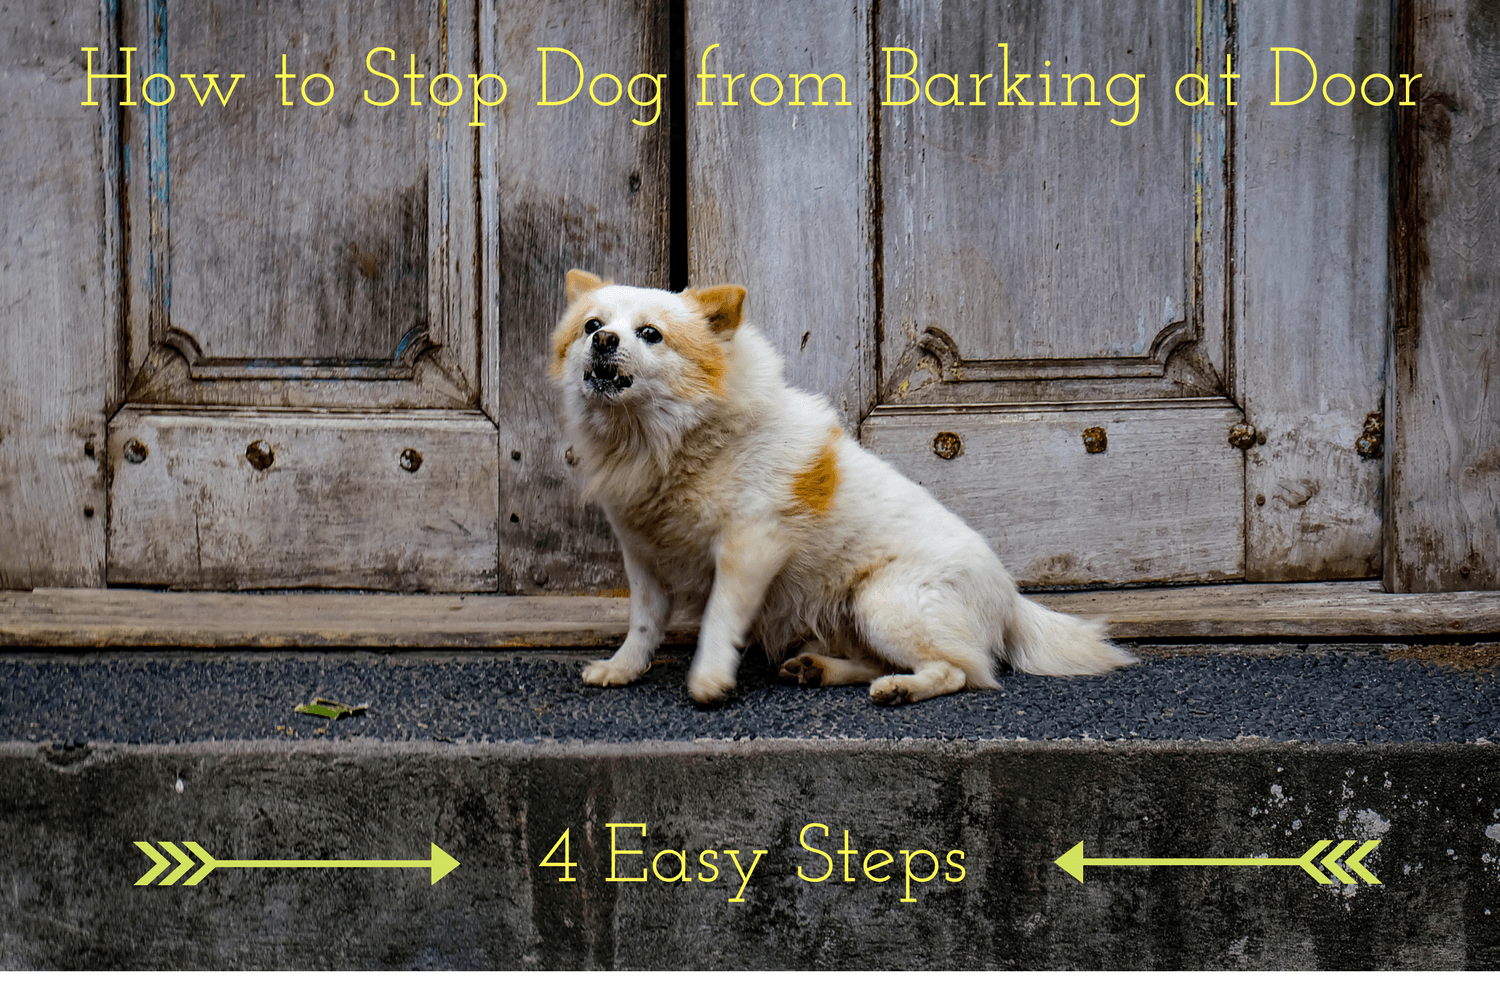 How to Stop Dog from Barking at Door in 4 Easy Steps1